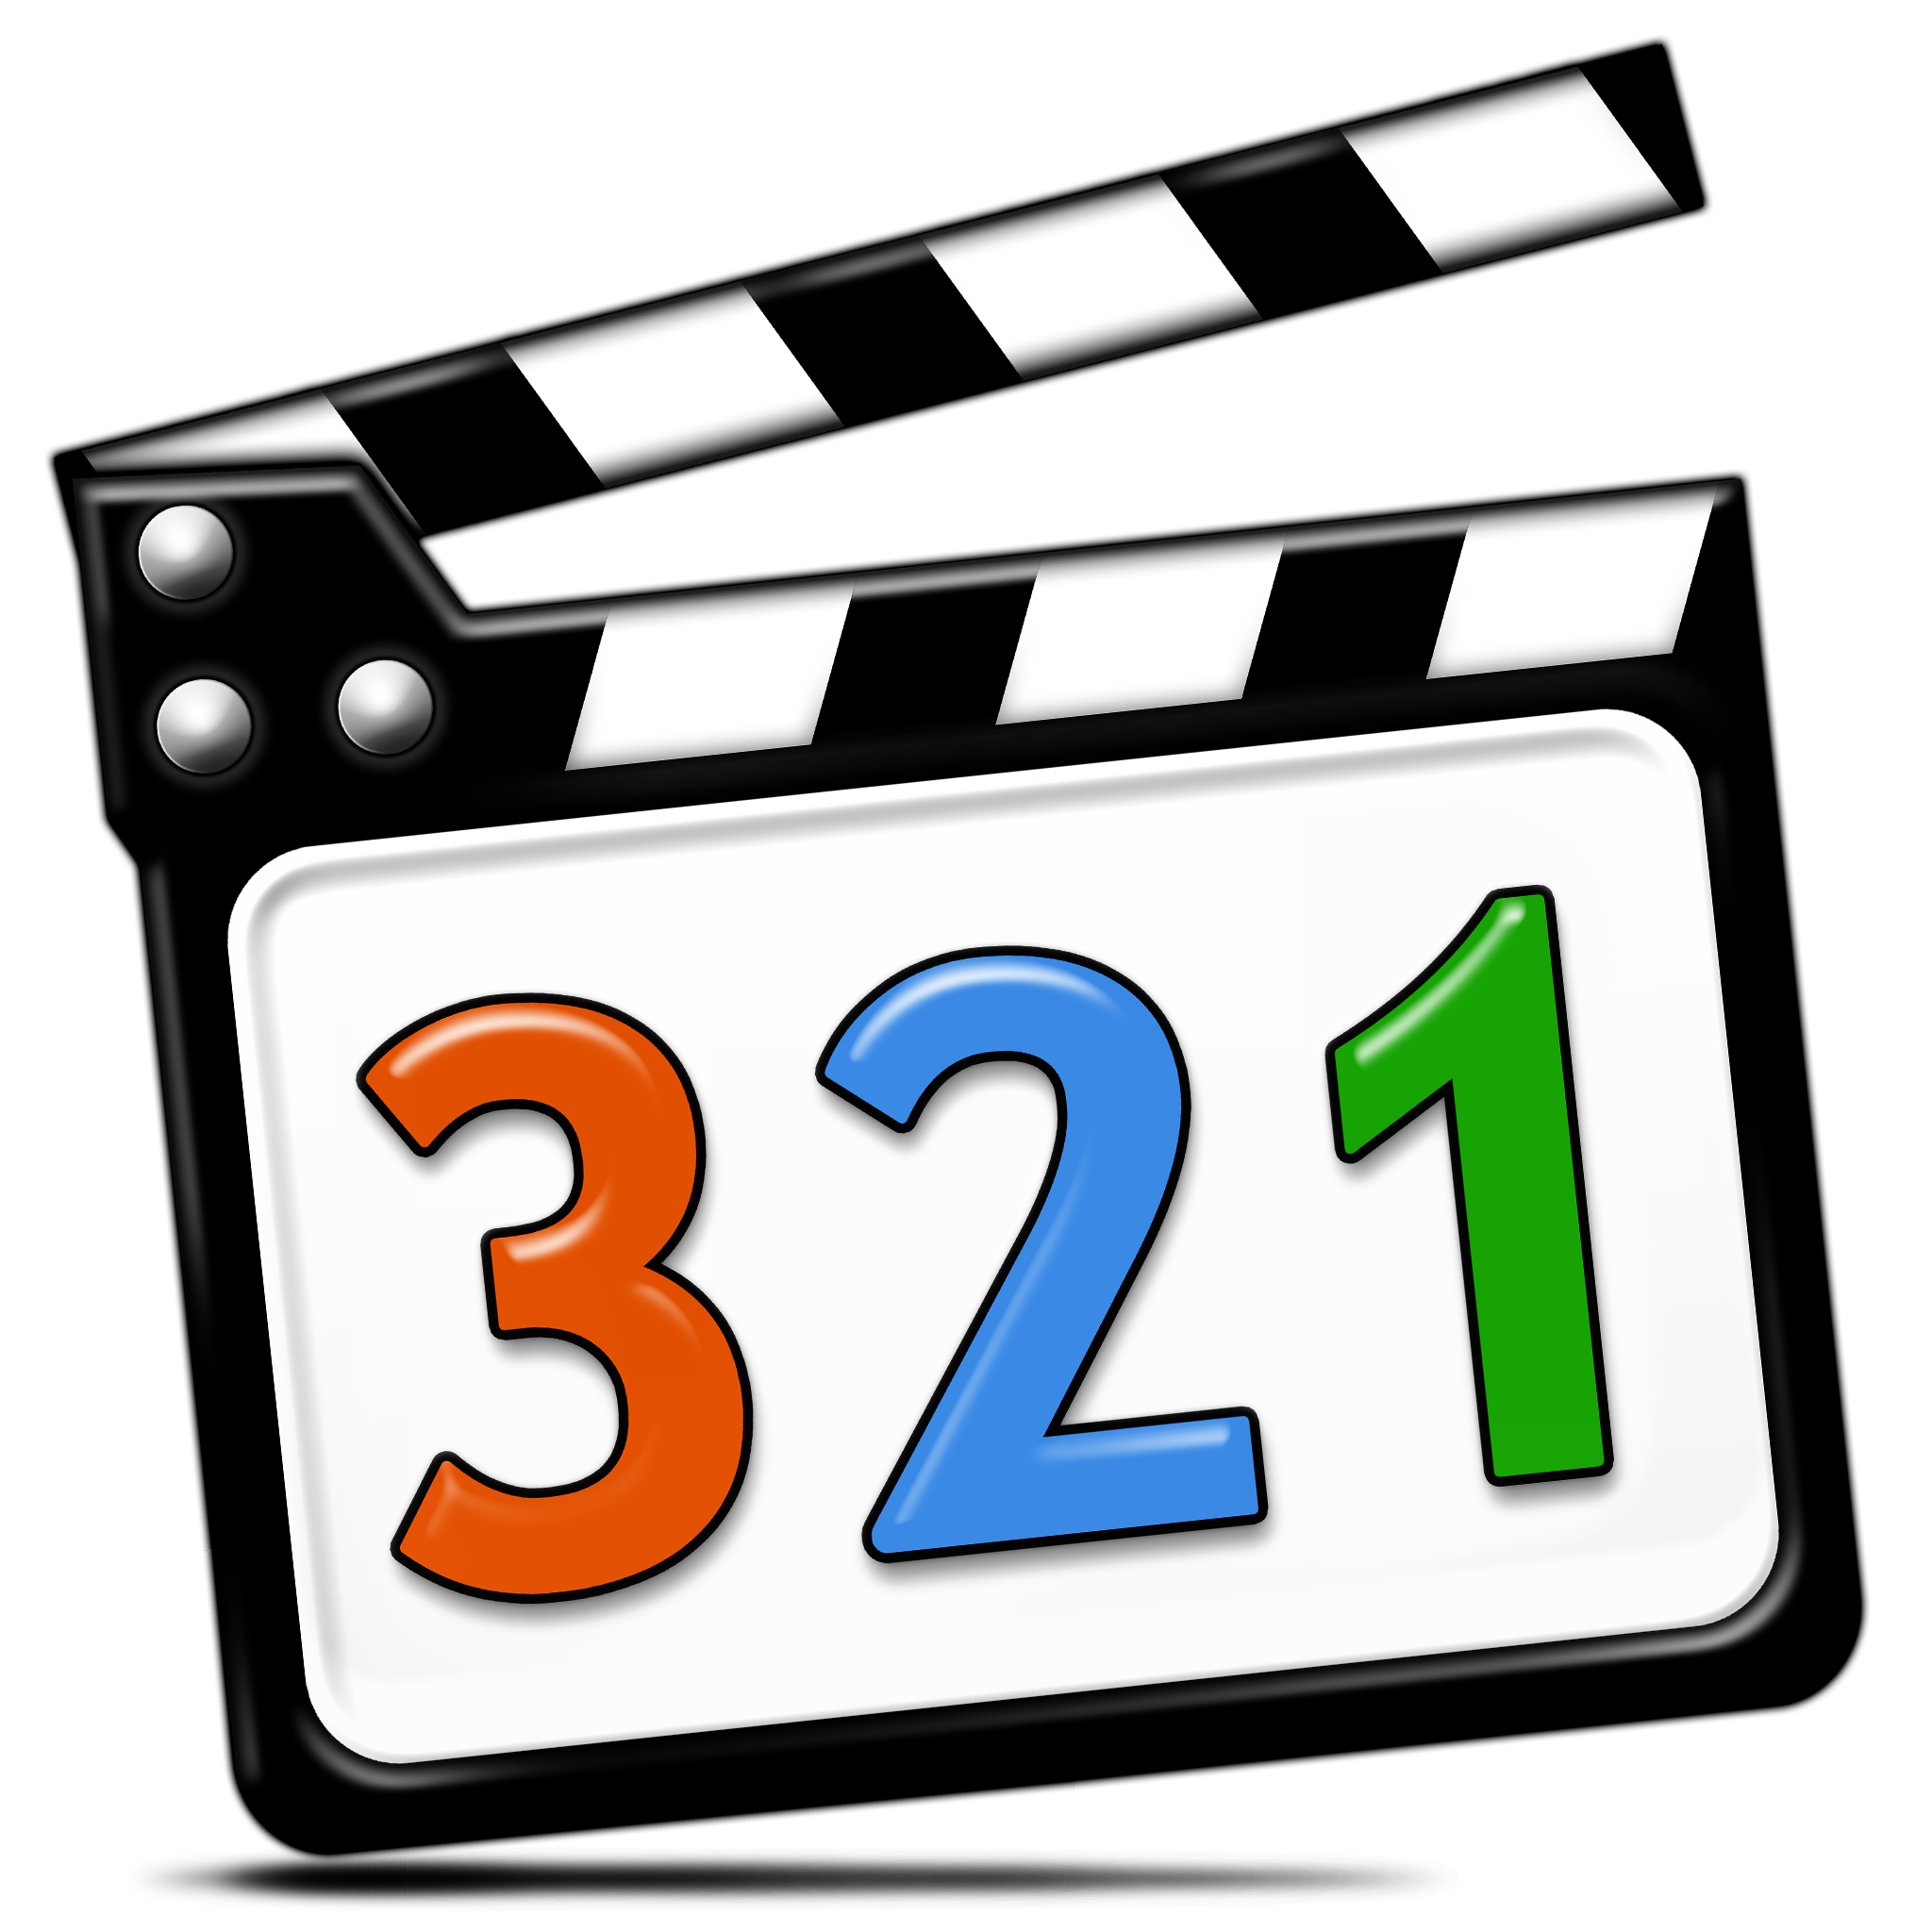 File:Media Player Classic MPC With Shadow With Numbers.png - Media Player PNG